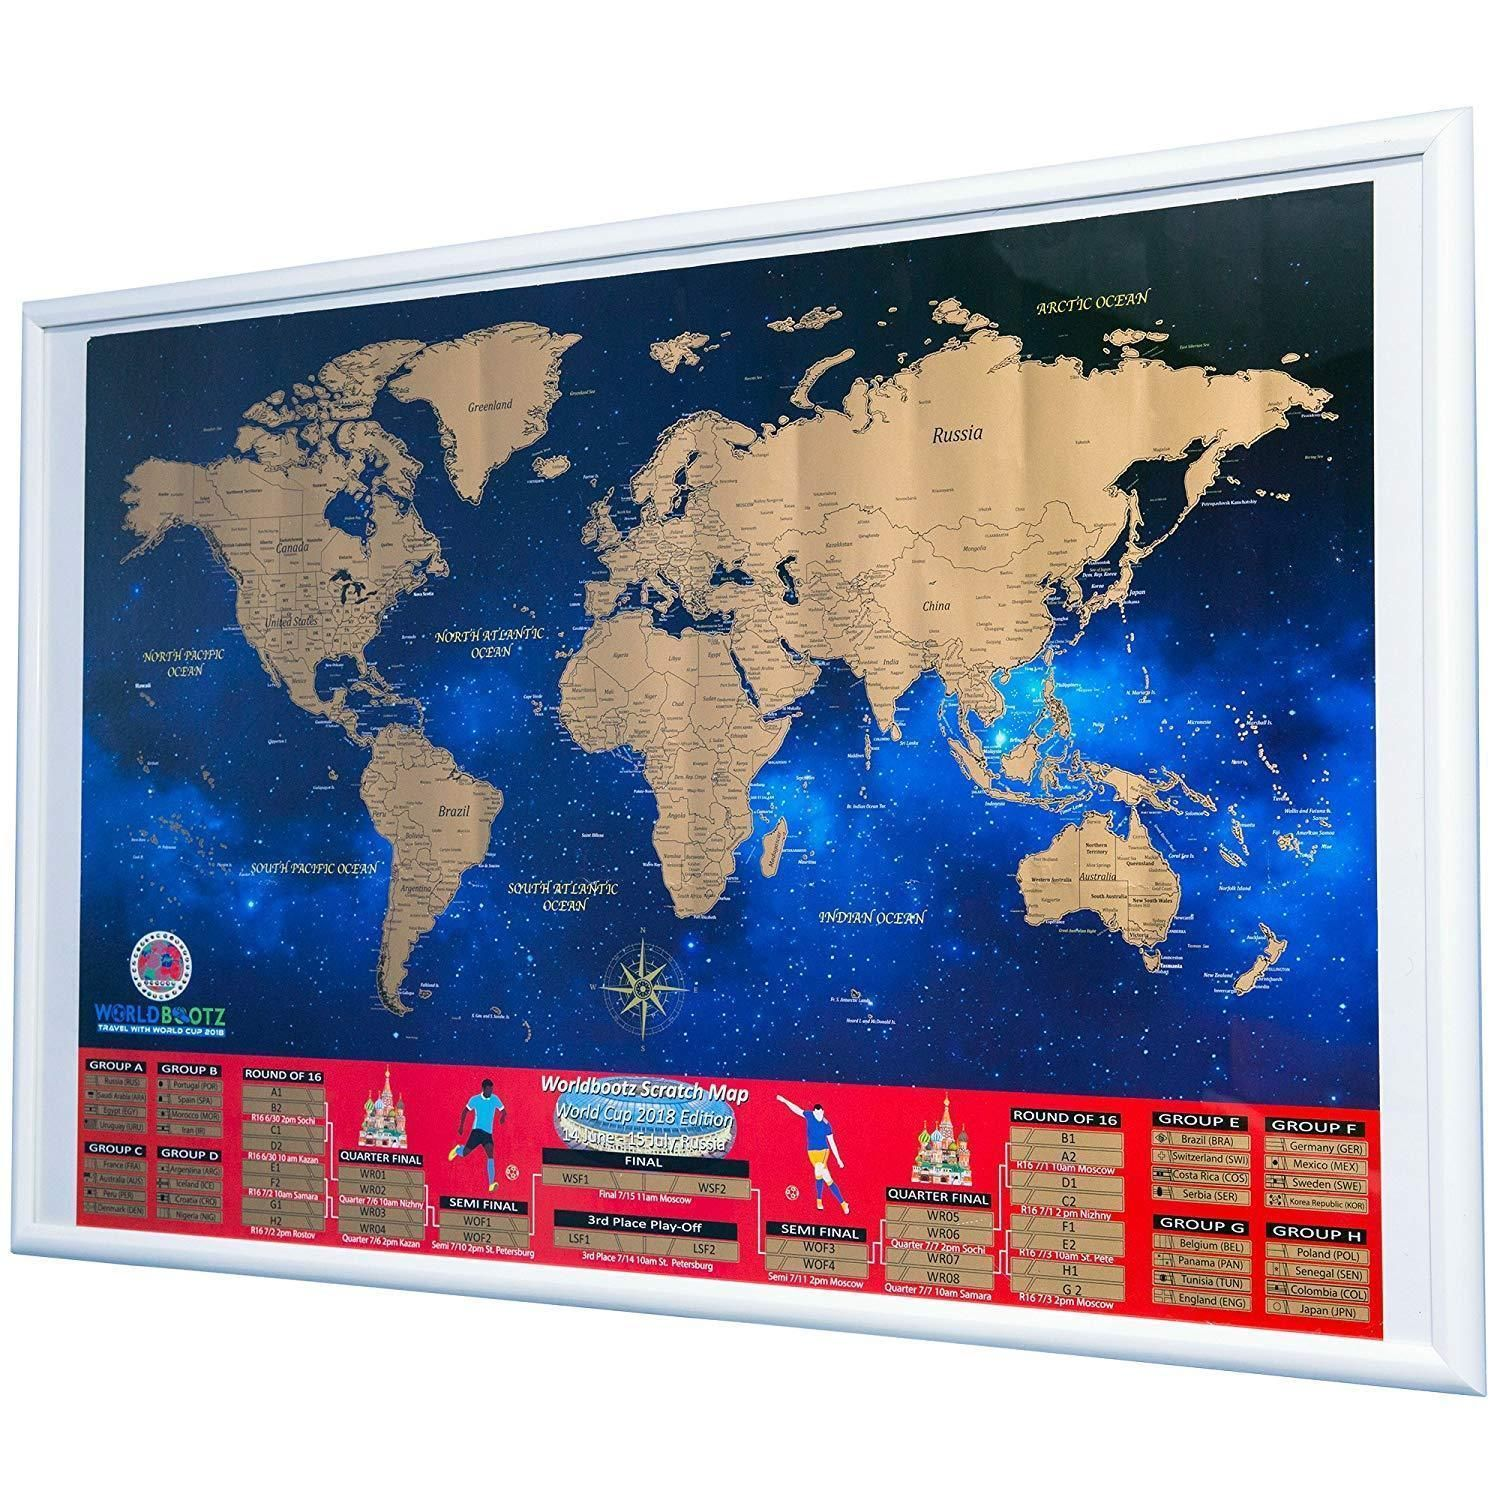 World cup 2018 scratch off map brackets poster soccer wall chart world cup 2018 scratch off map brackets poster soccer wall chart russia discount price 3000 free gumiabroncs Choice Image